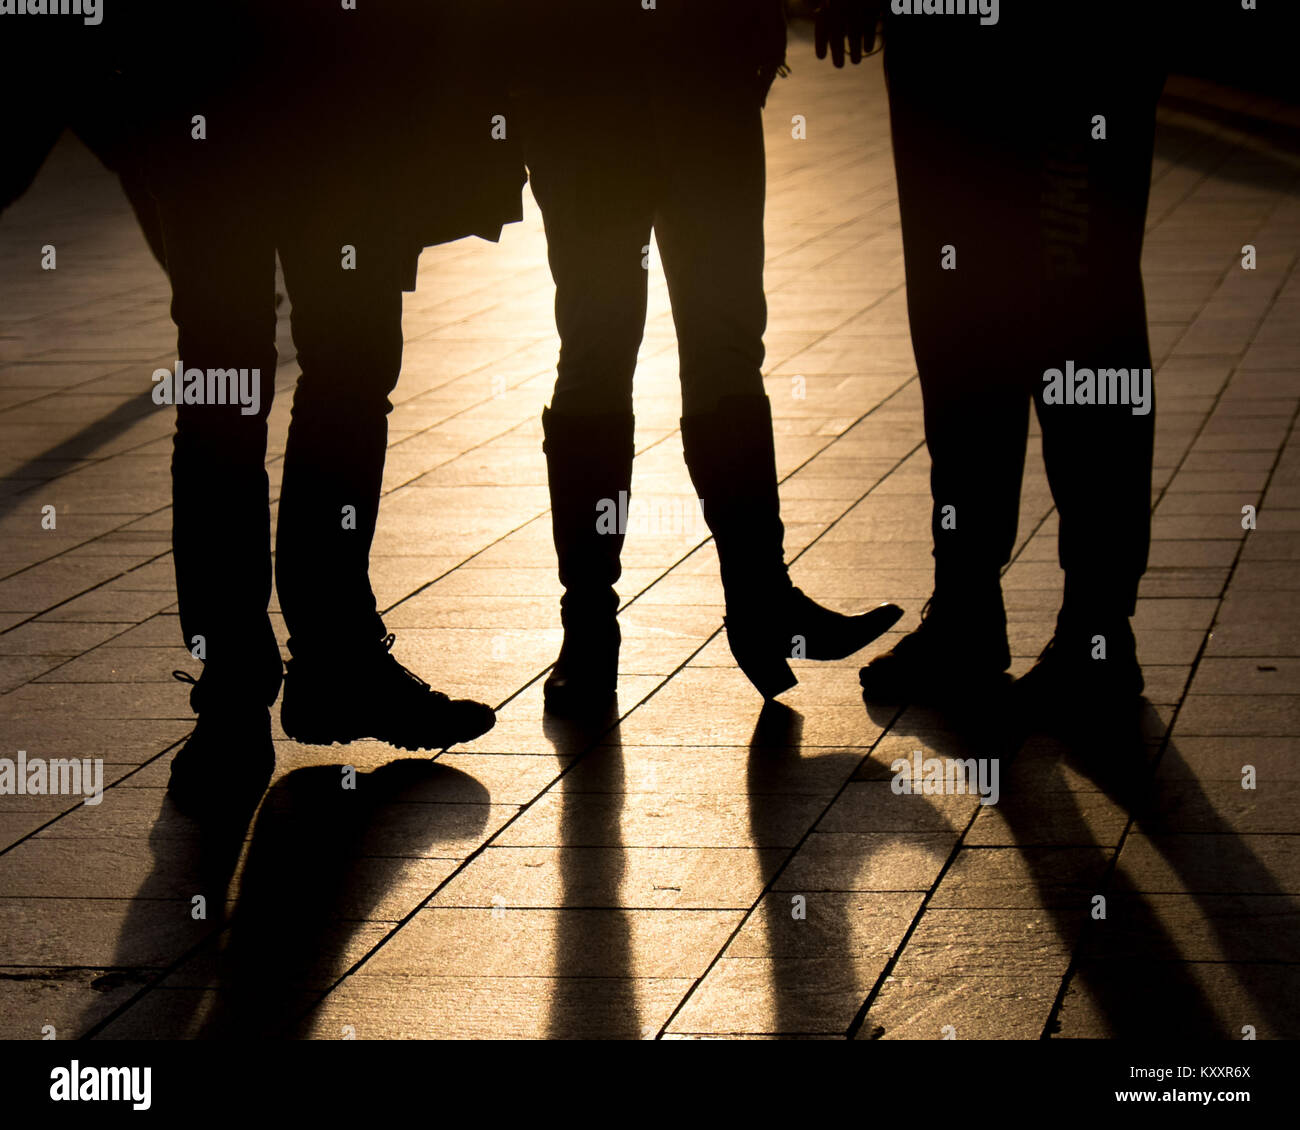 Friends stood chatting at sunset. - Stock Image